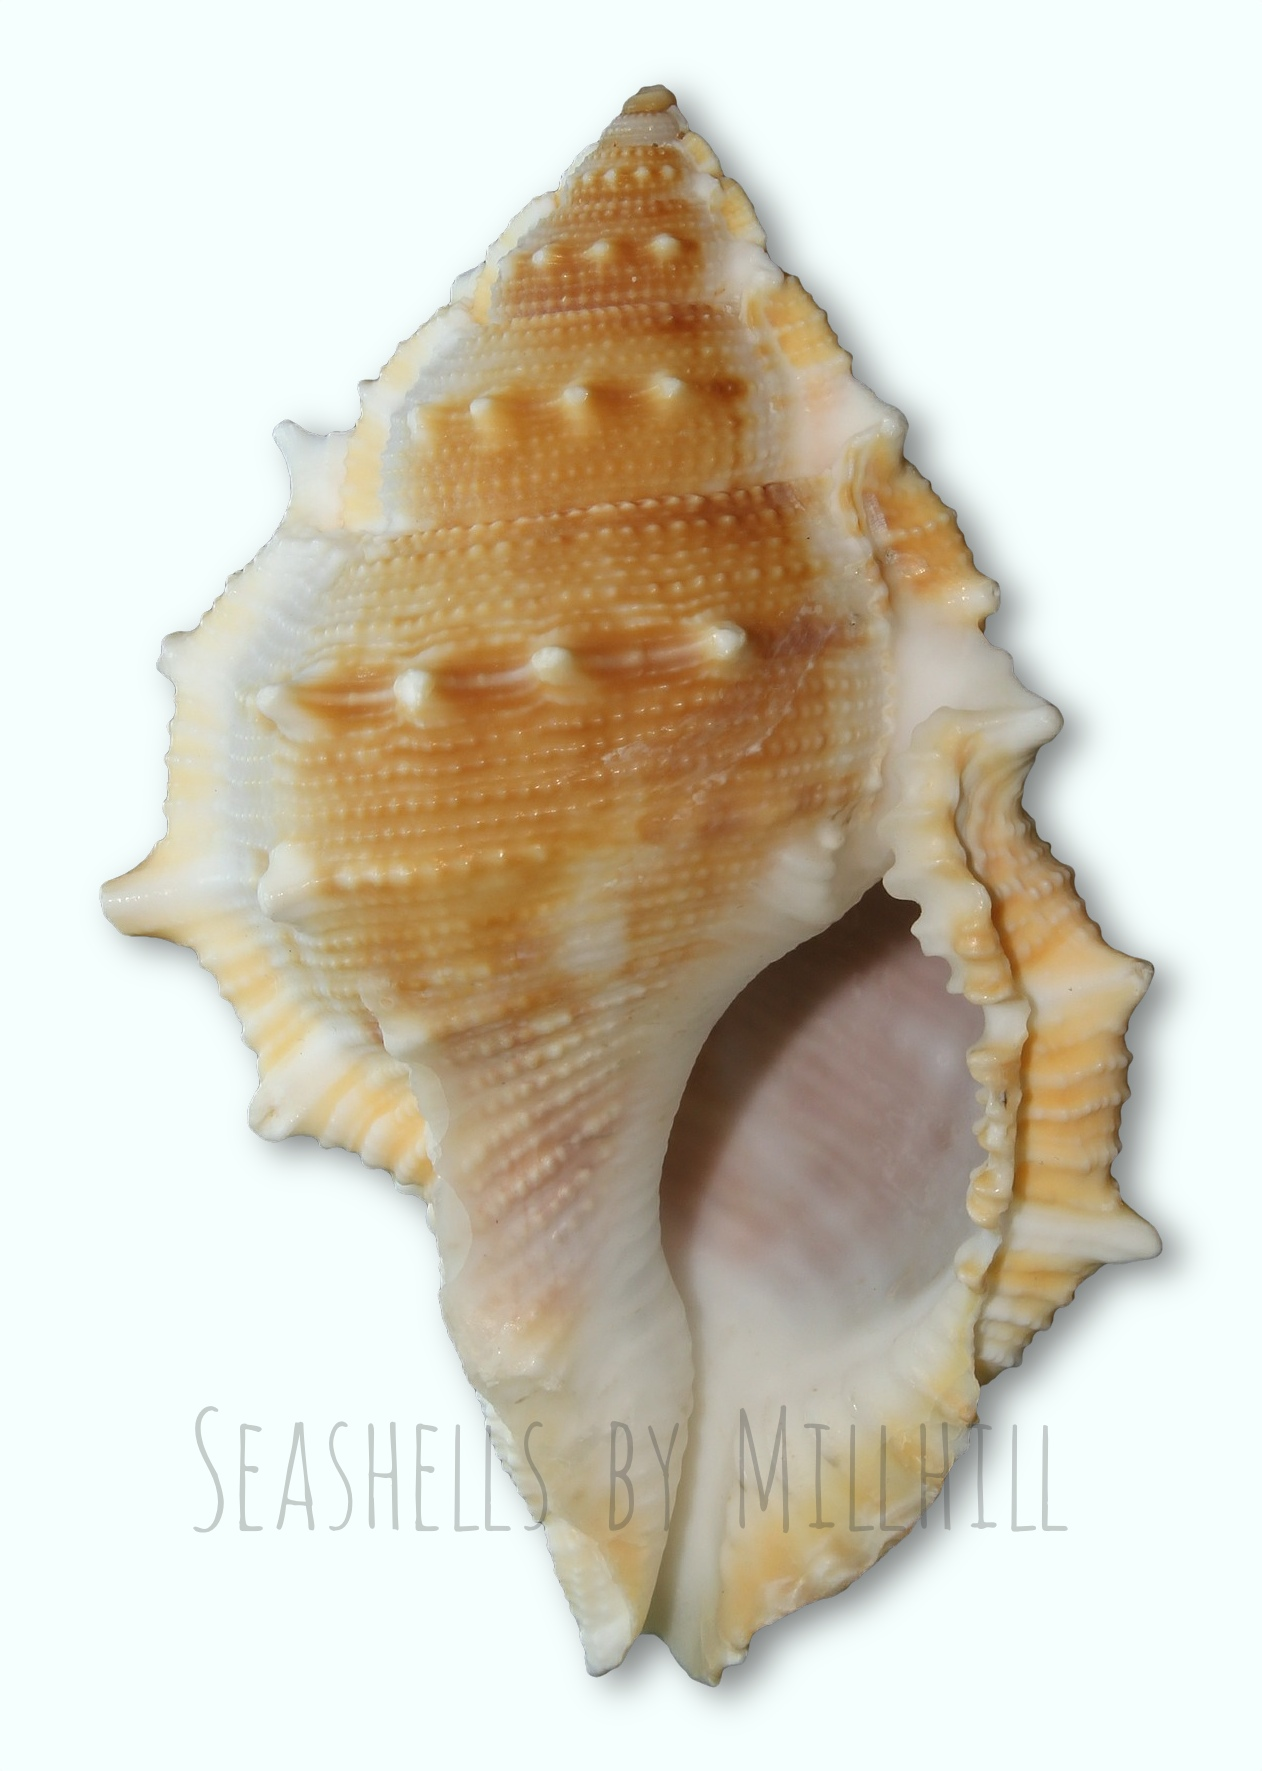 A Pretty Little Seashell Seashells By Millhill